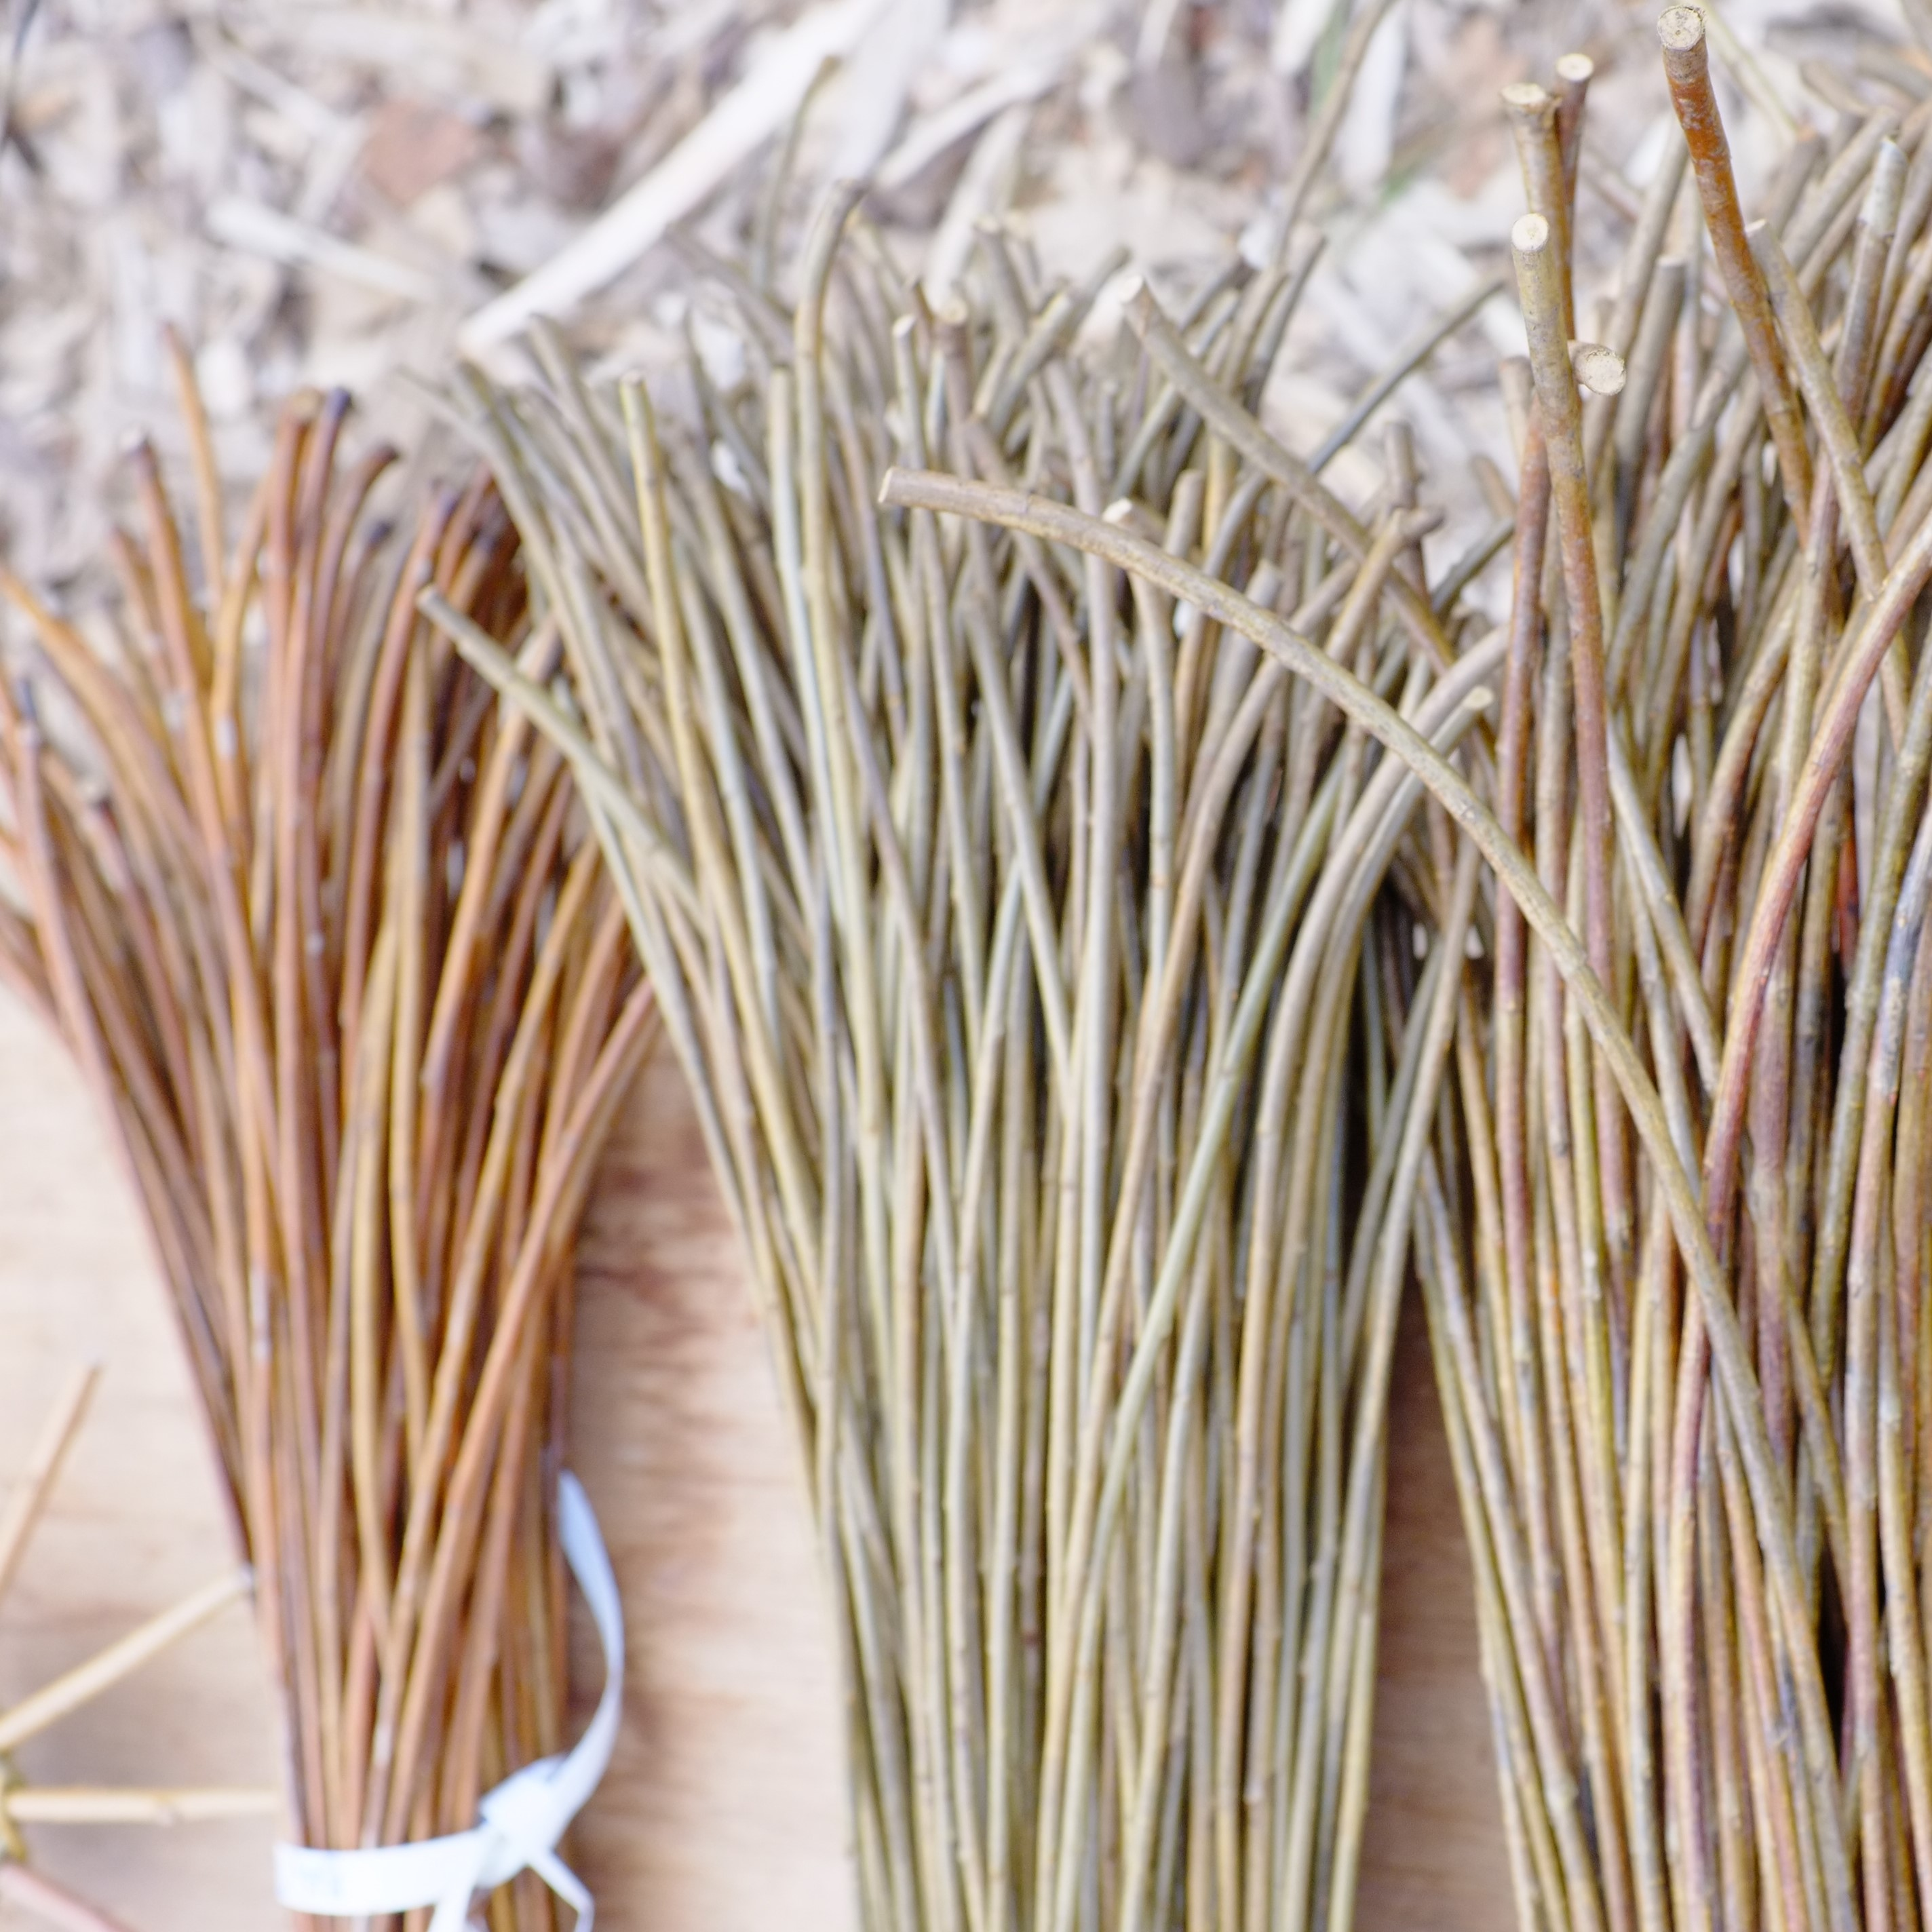 Learn a Craft at the Botanic Cottage: Willow Baskets